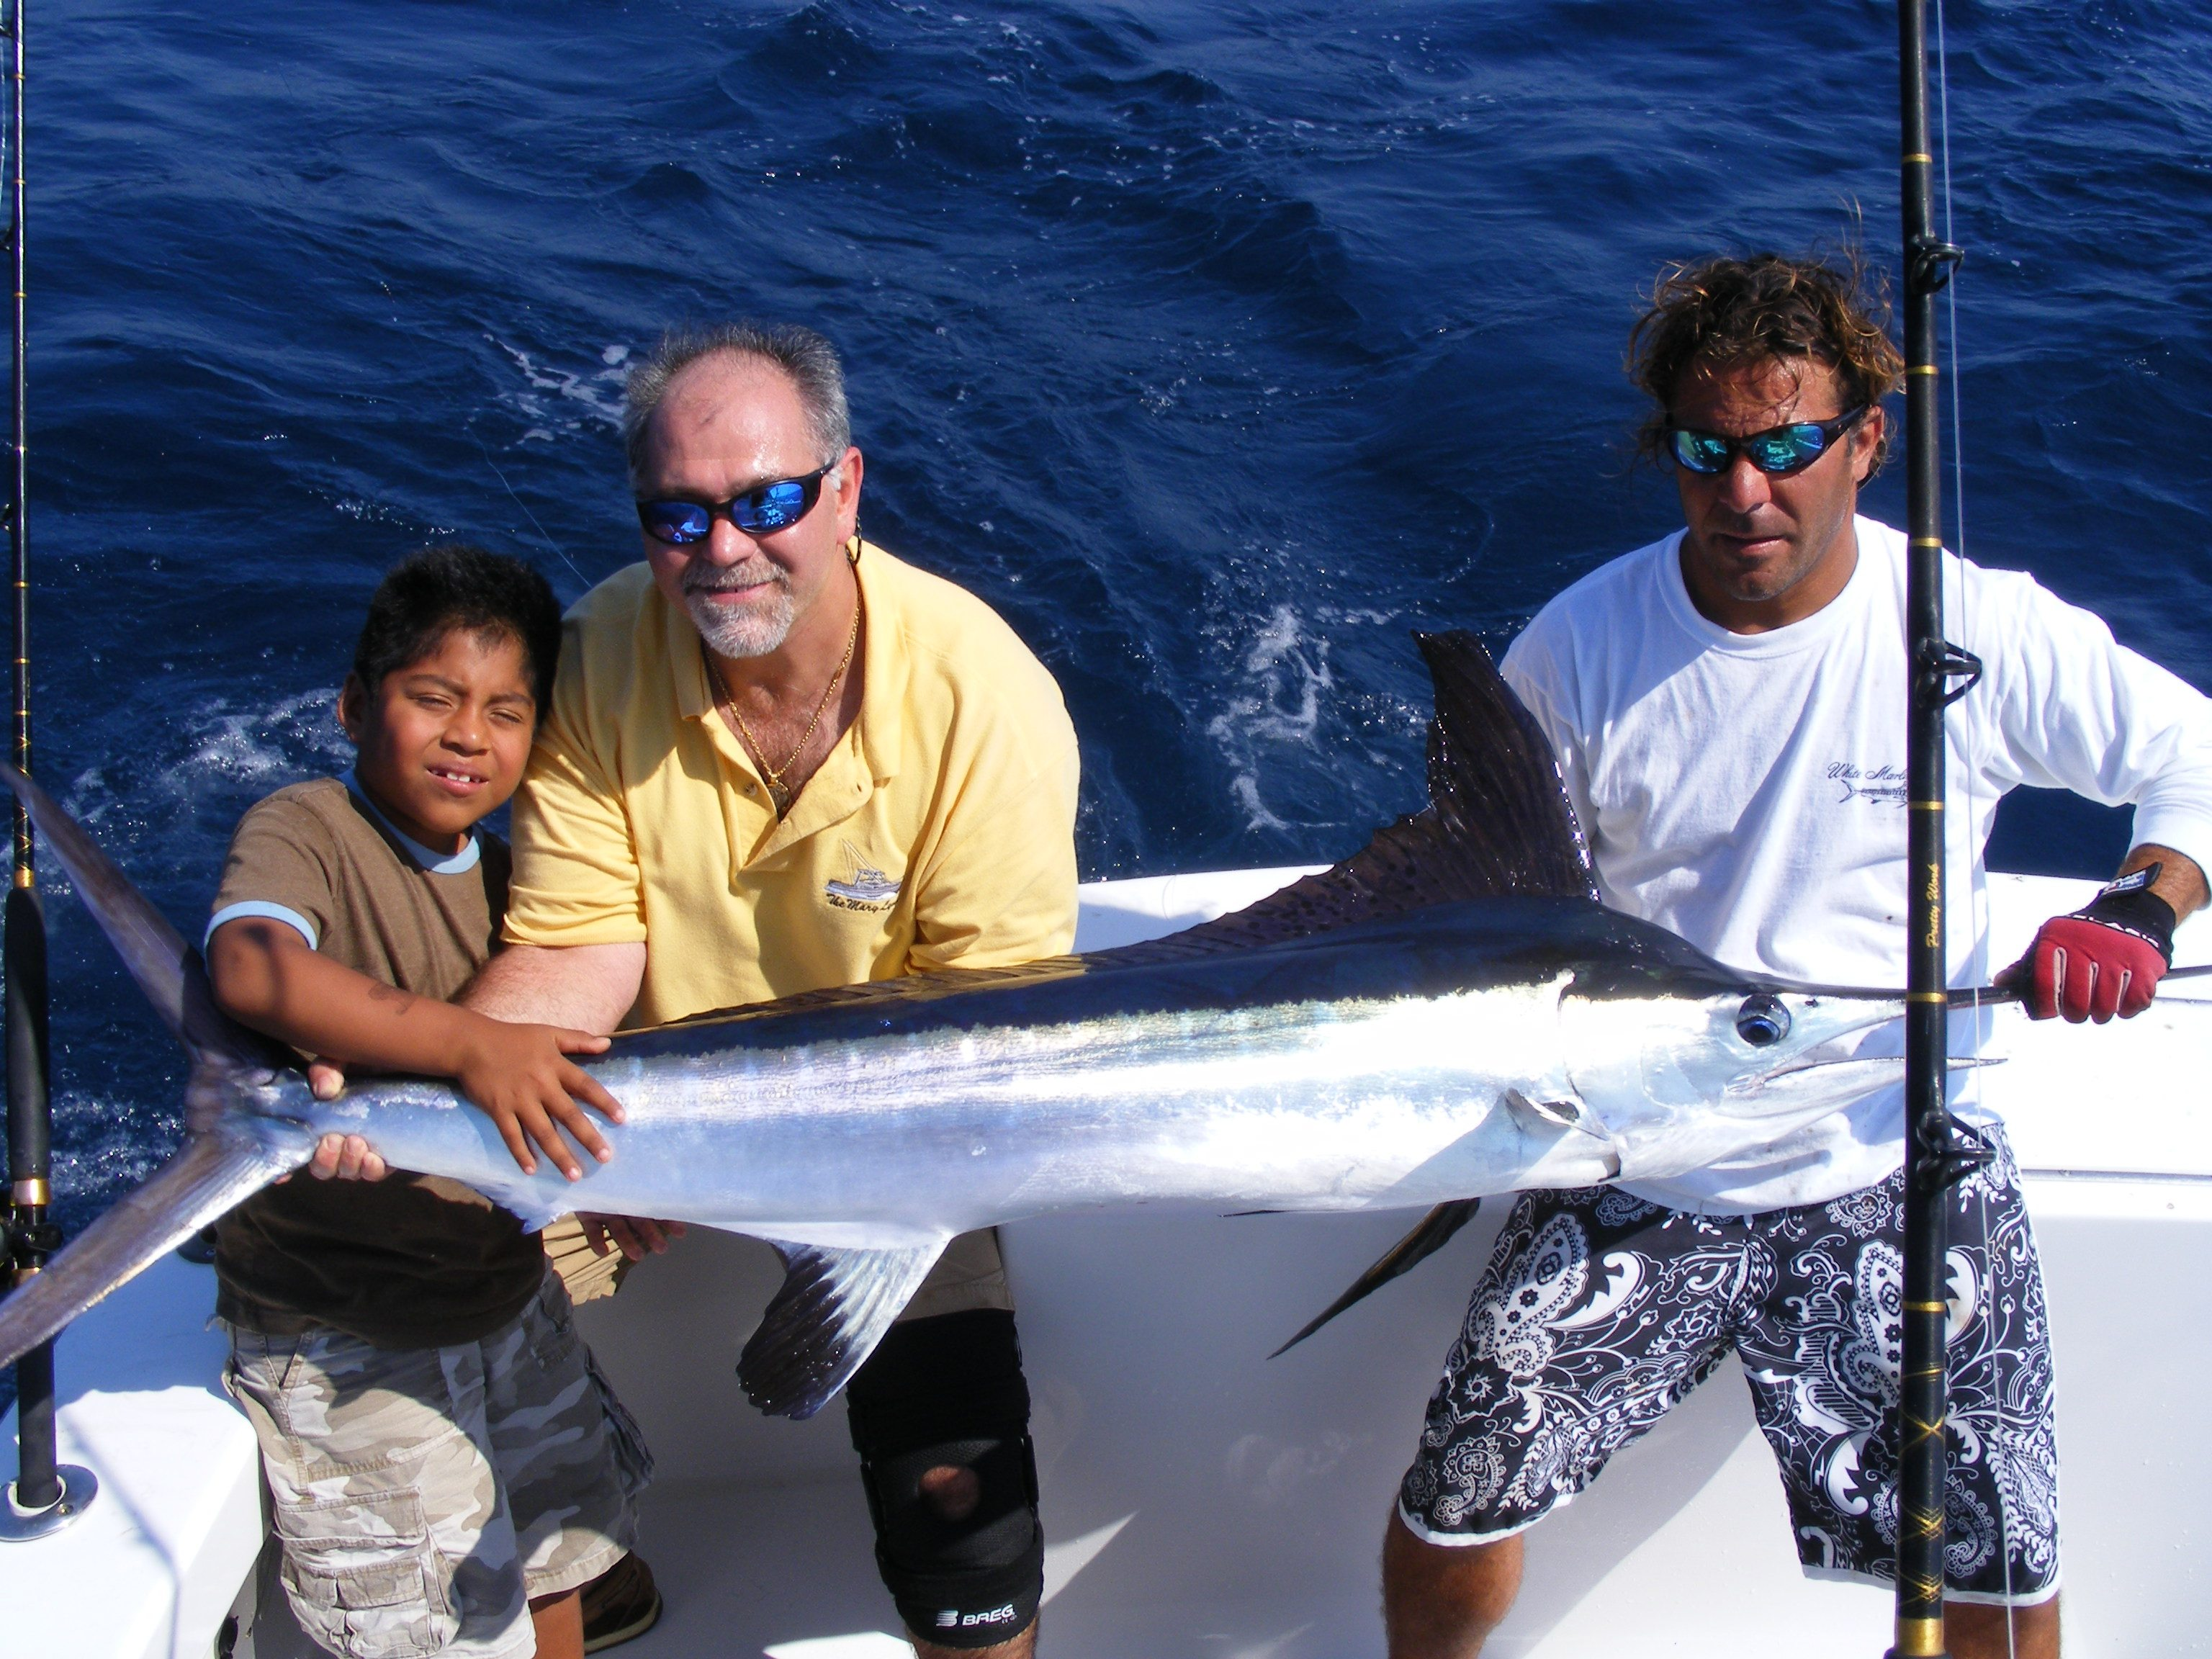 Ocean city maryland marlin fishing pictures group for Fishing in ocean city md